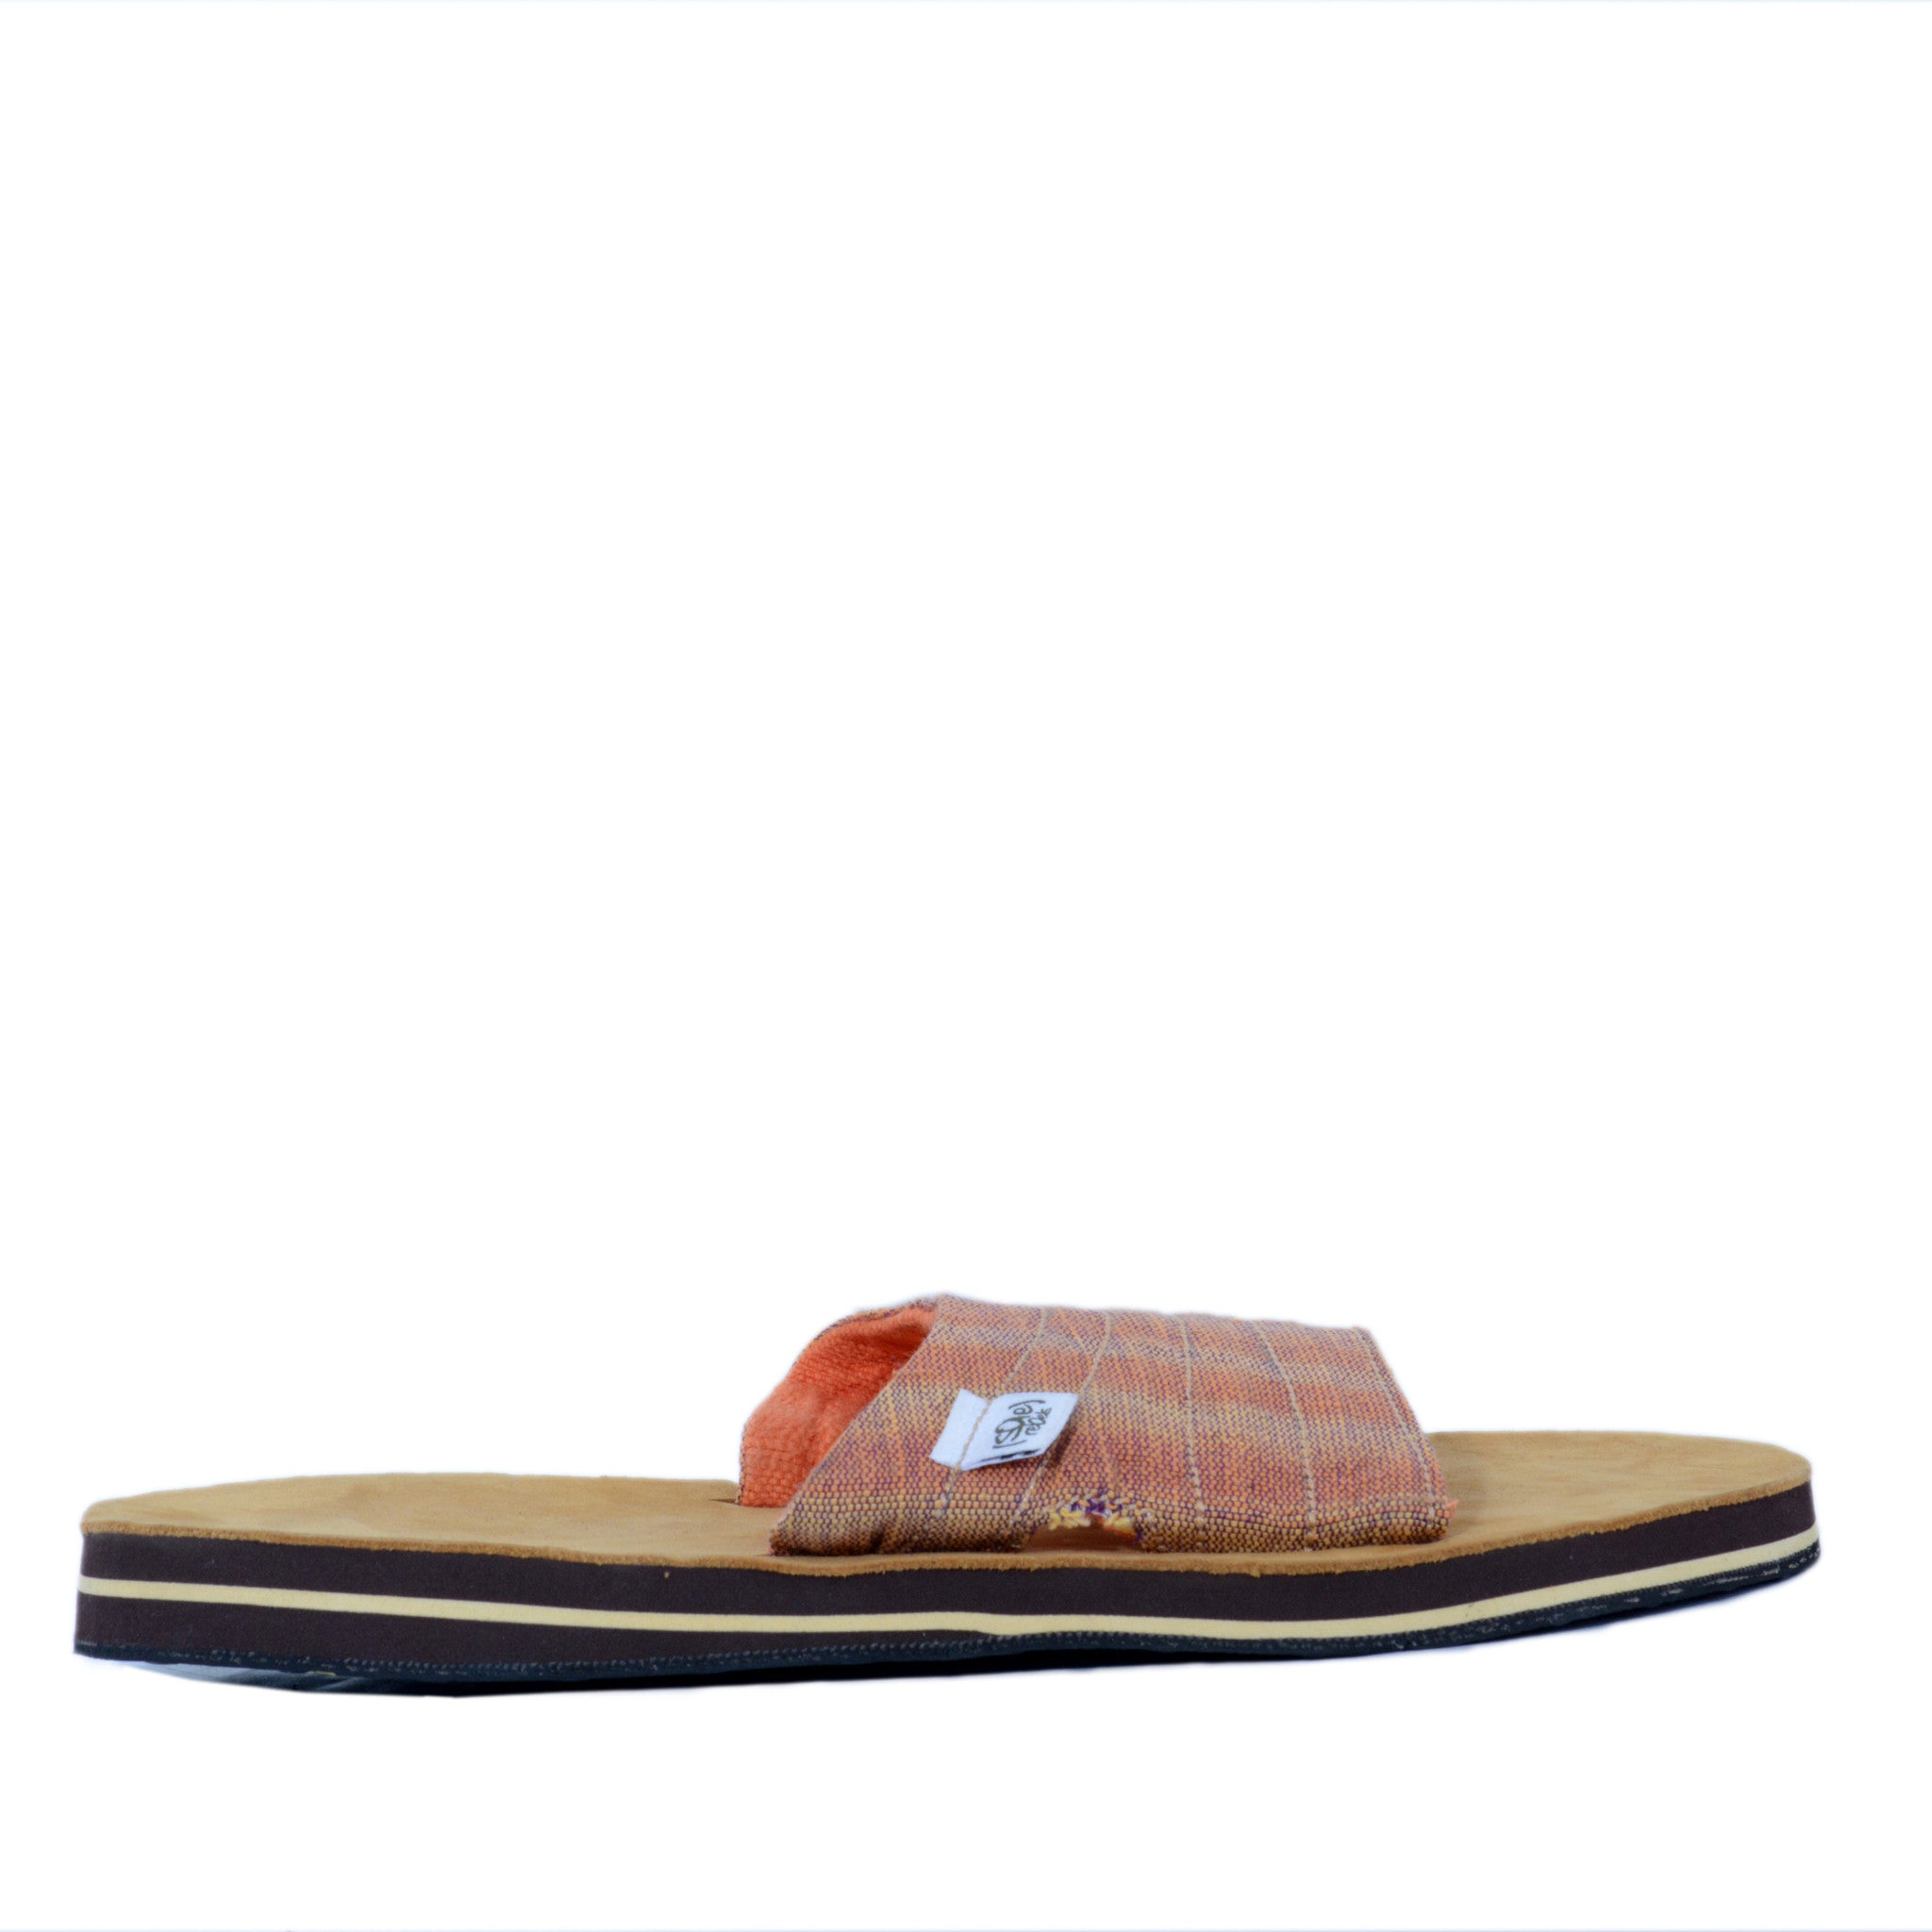 solerebels Orange zuck it 2 Sandals